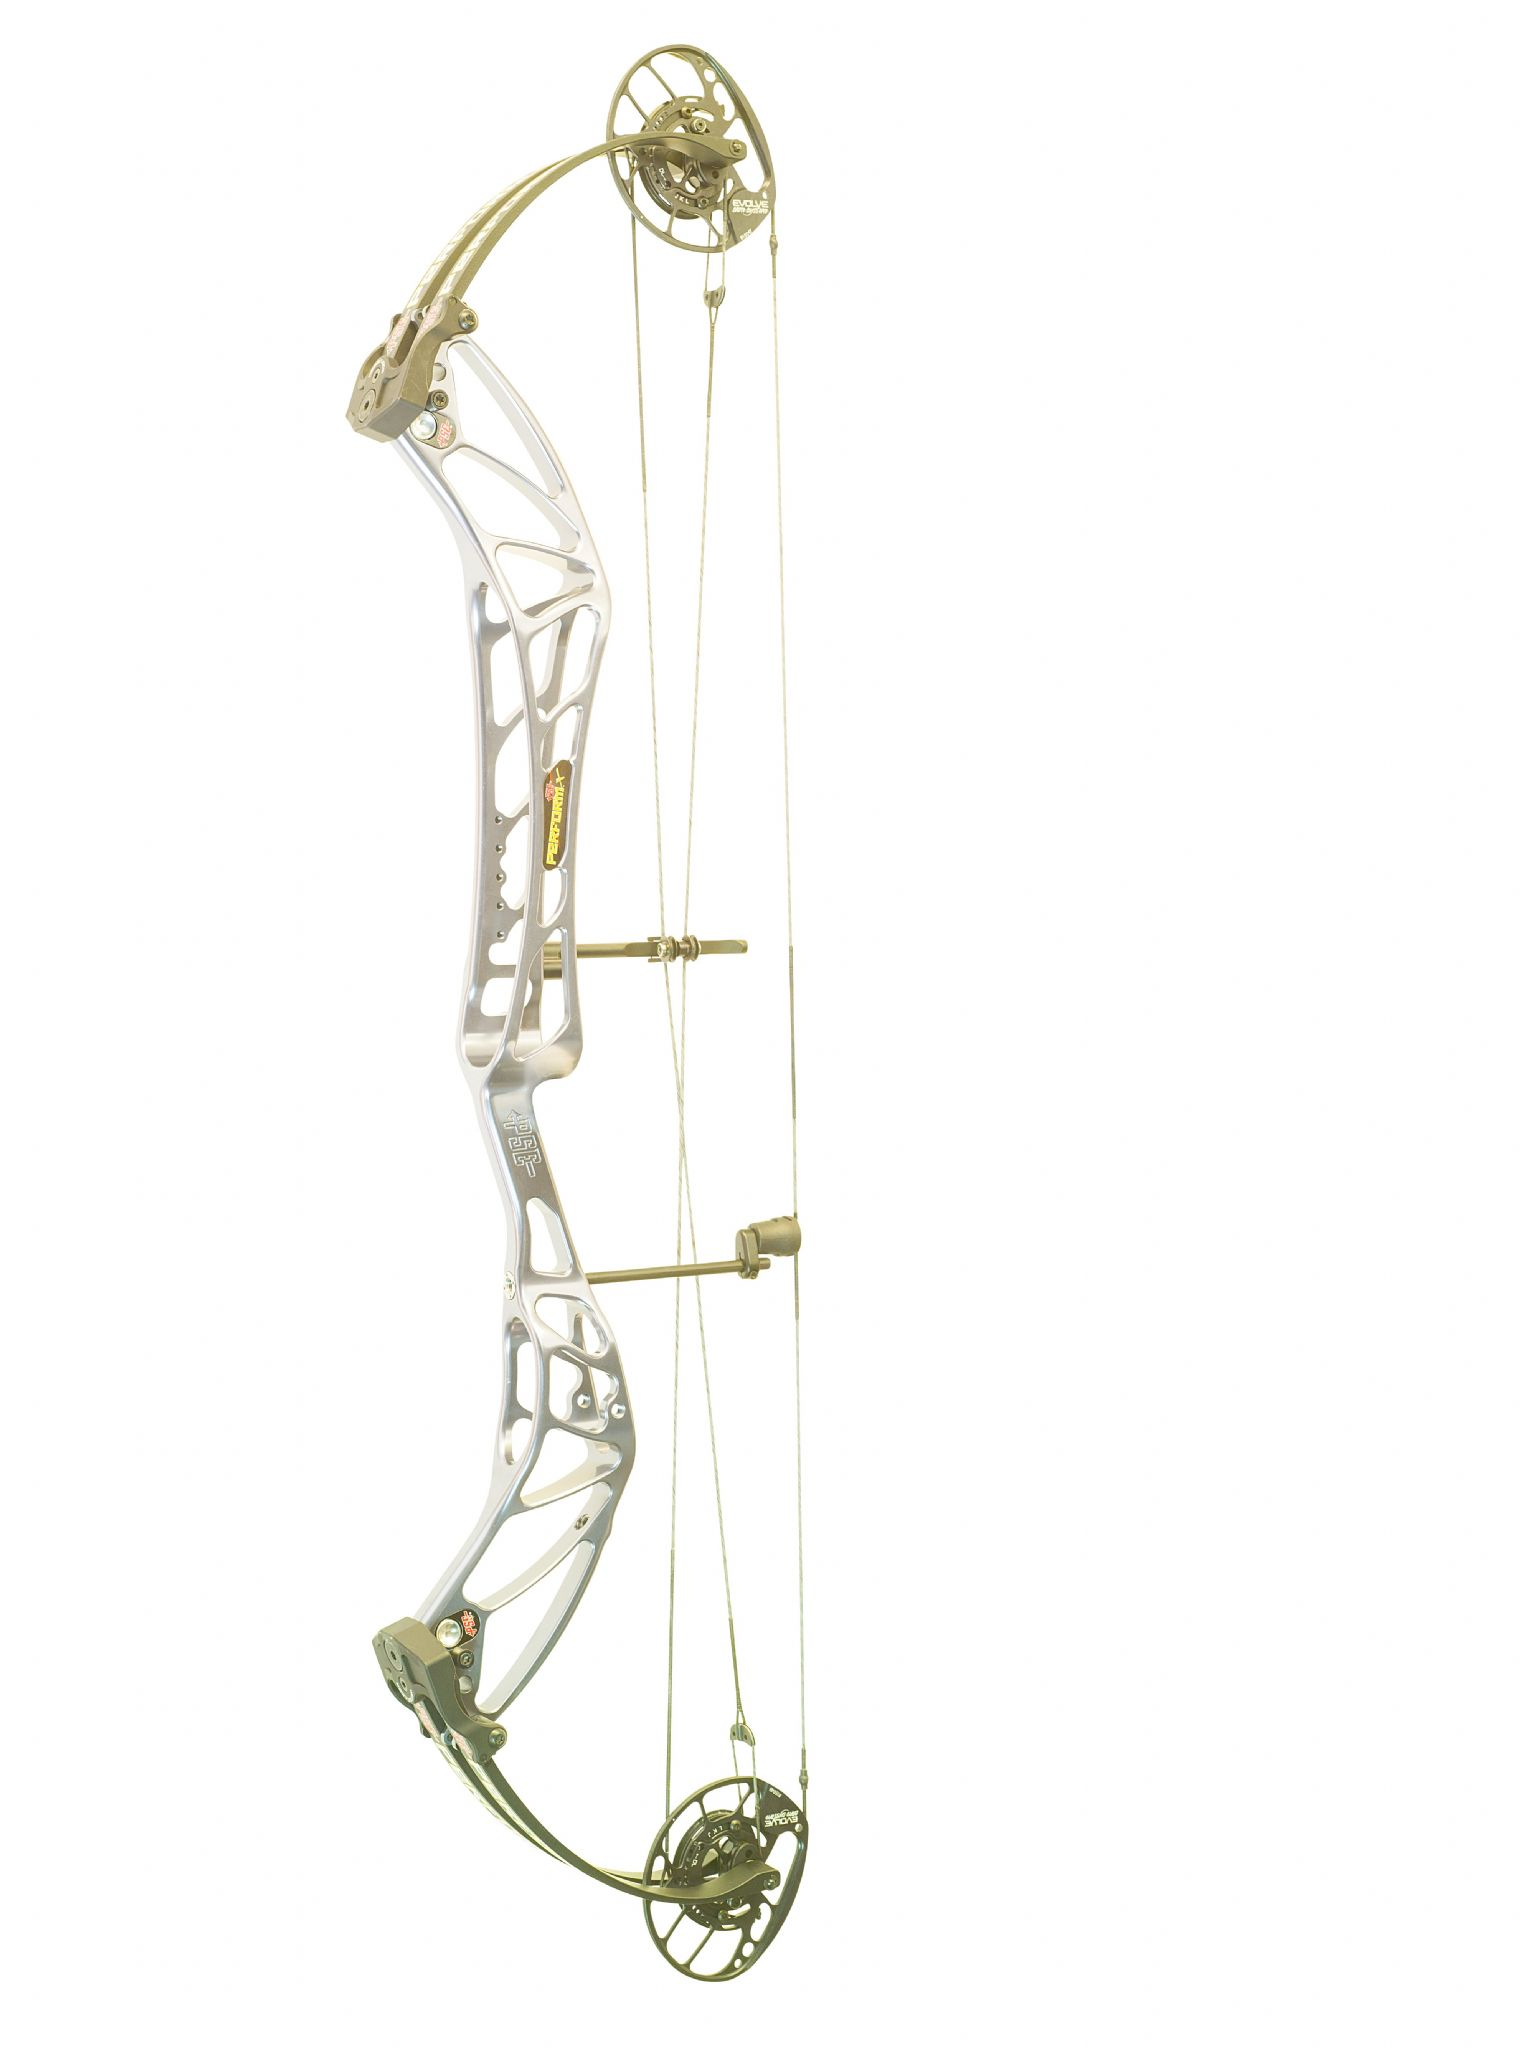 PSE Compound Bow Perform-X 2018 32